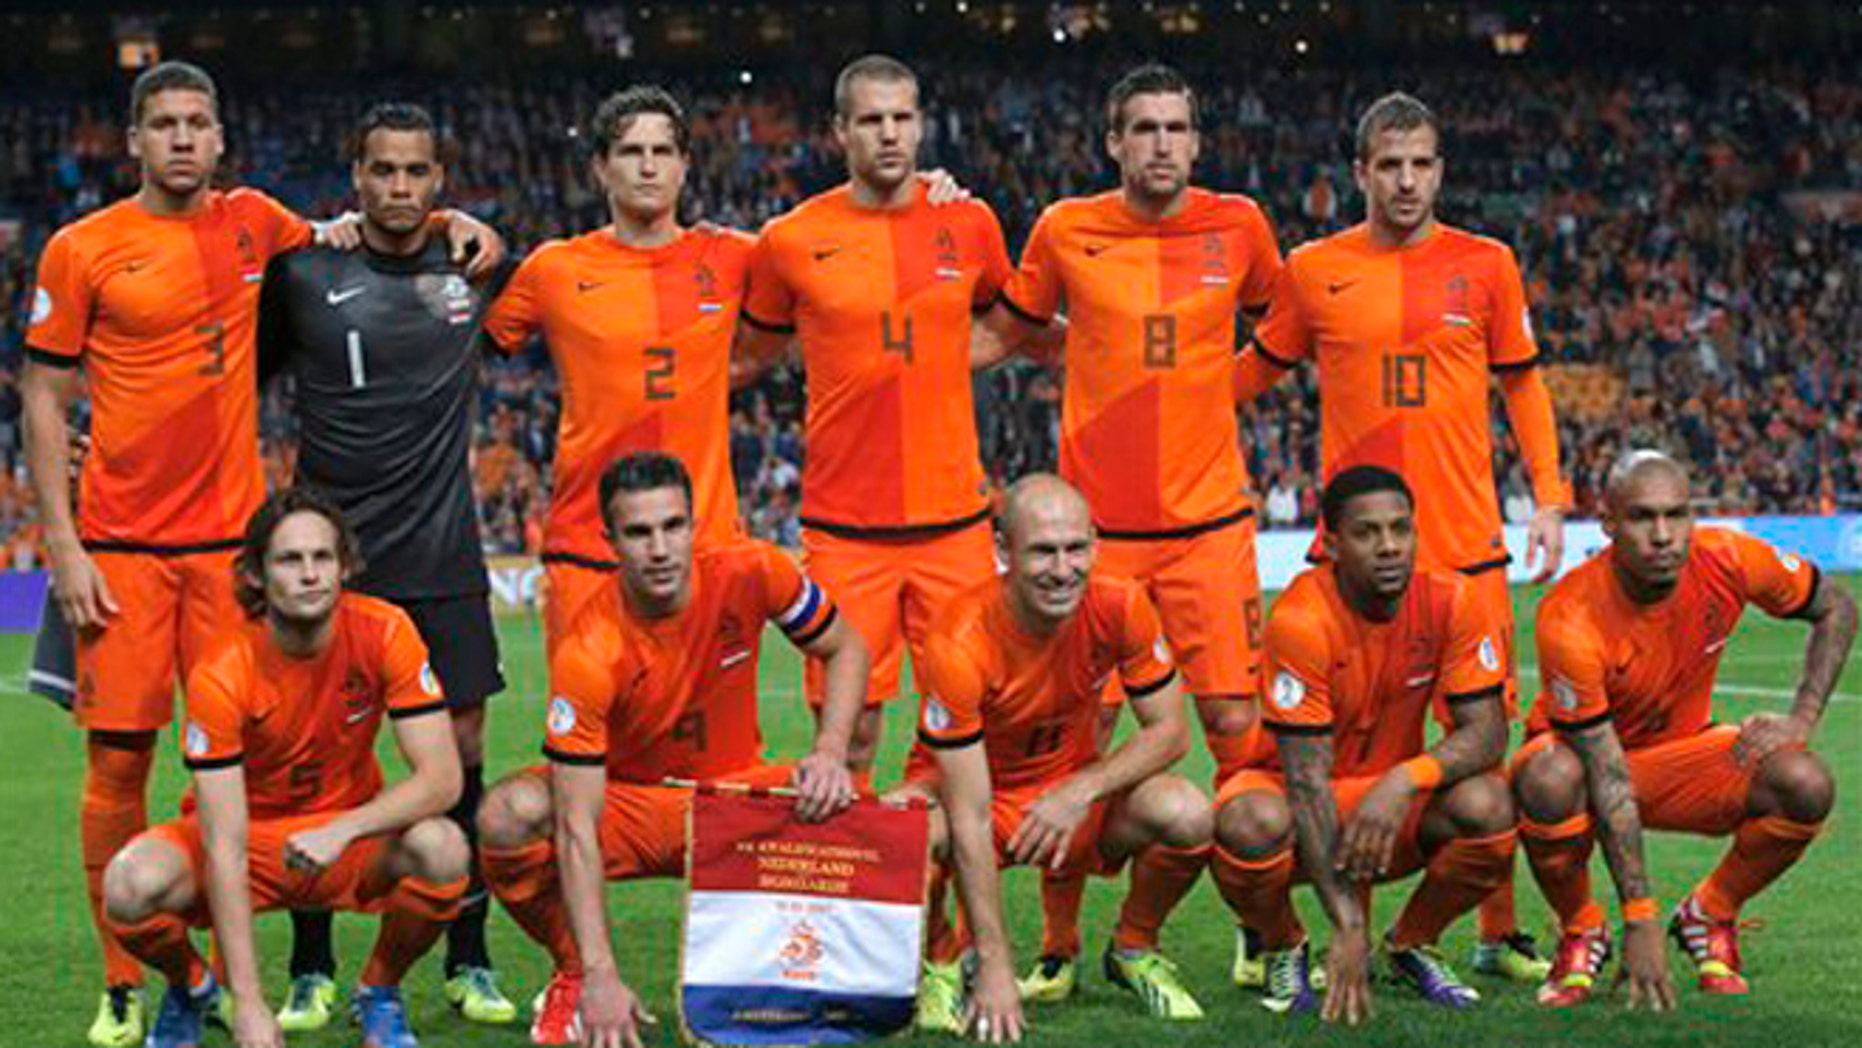 FILE - In this Oct. 11, 2013 file photo, Dutch soccer team poses prior the start the Group D World Cup qualifying soccer match between Netherlands and Hungary, at Arena stadium in Amsterdam, Netherlands. Background from left: Jeffrey Bruma, Michel Vorm, Daryl Janmaat, Ron Vlaar, Kevin Strootman, and Rafael van der Vaart. Foreground from left: Daley Blind, Robin van Persie, Arjen Robben, Jeremain Lens and Nigel de Jong. (AP Photo/Peter Dejong, File) - SEE FURTHER WORLD CUP CONTENT AT APIMAGES.COM